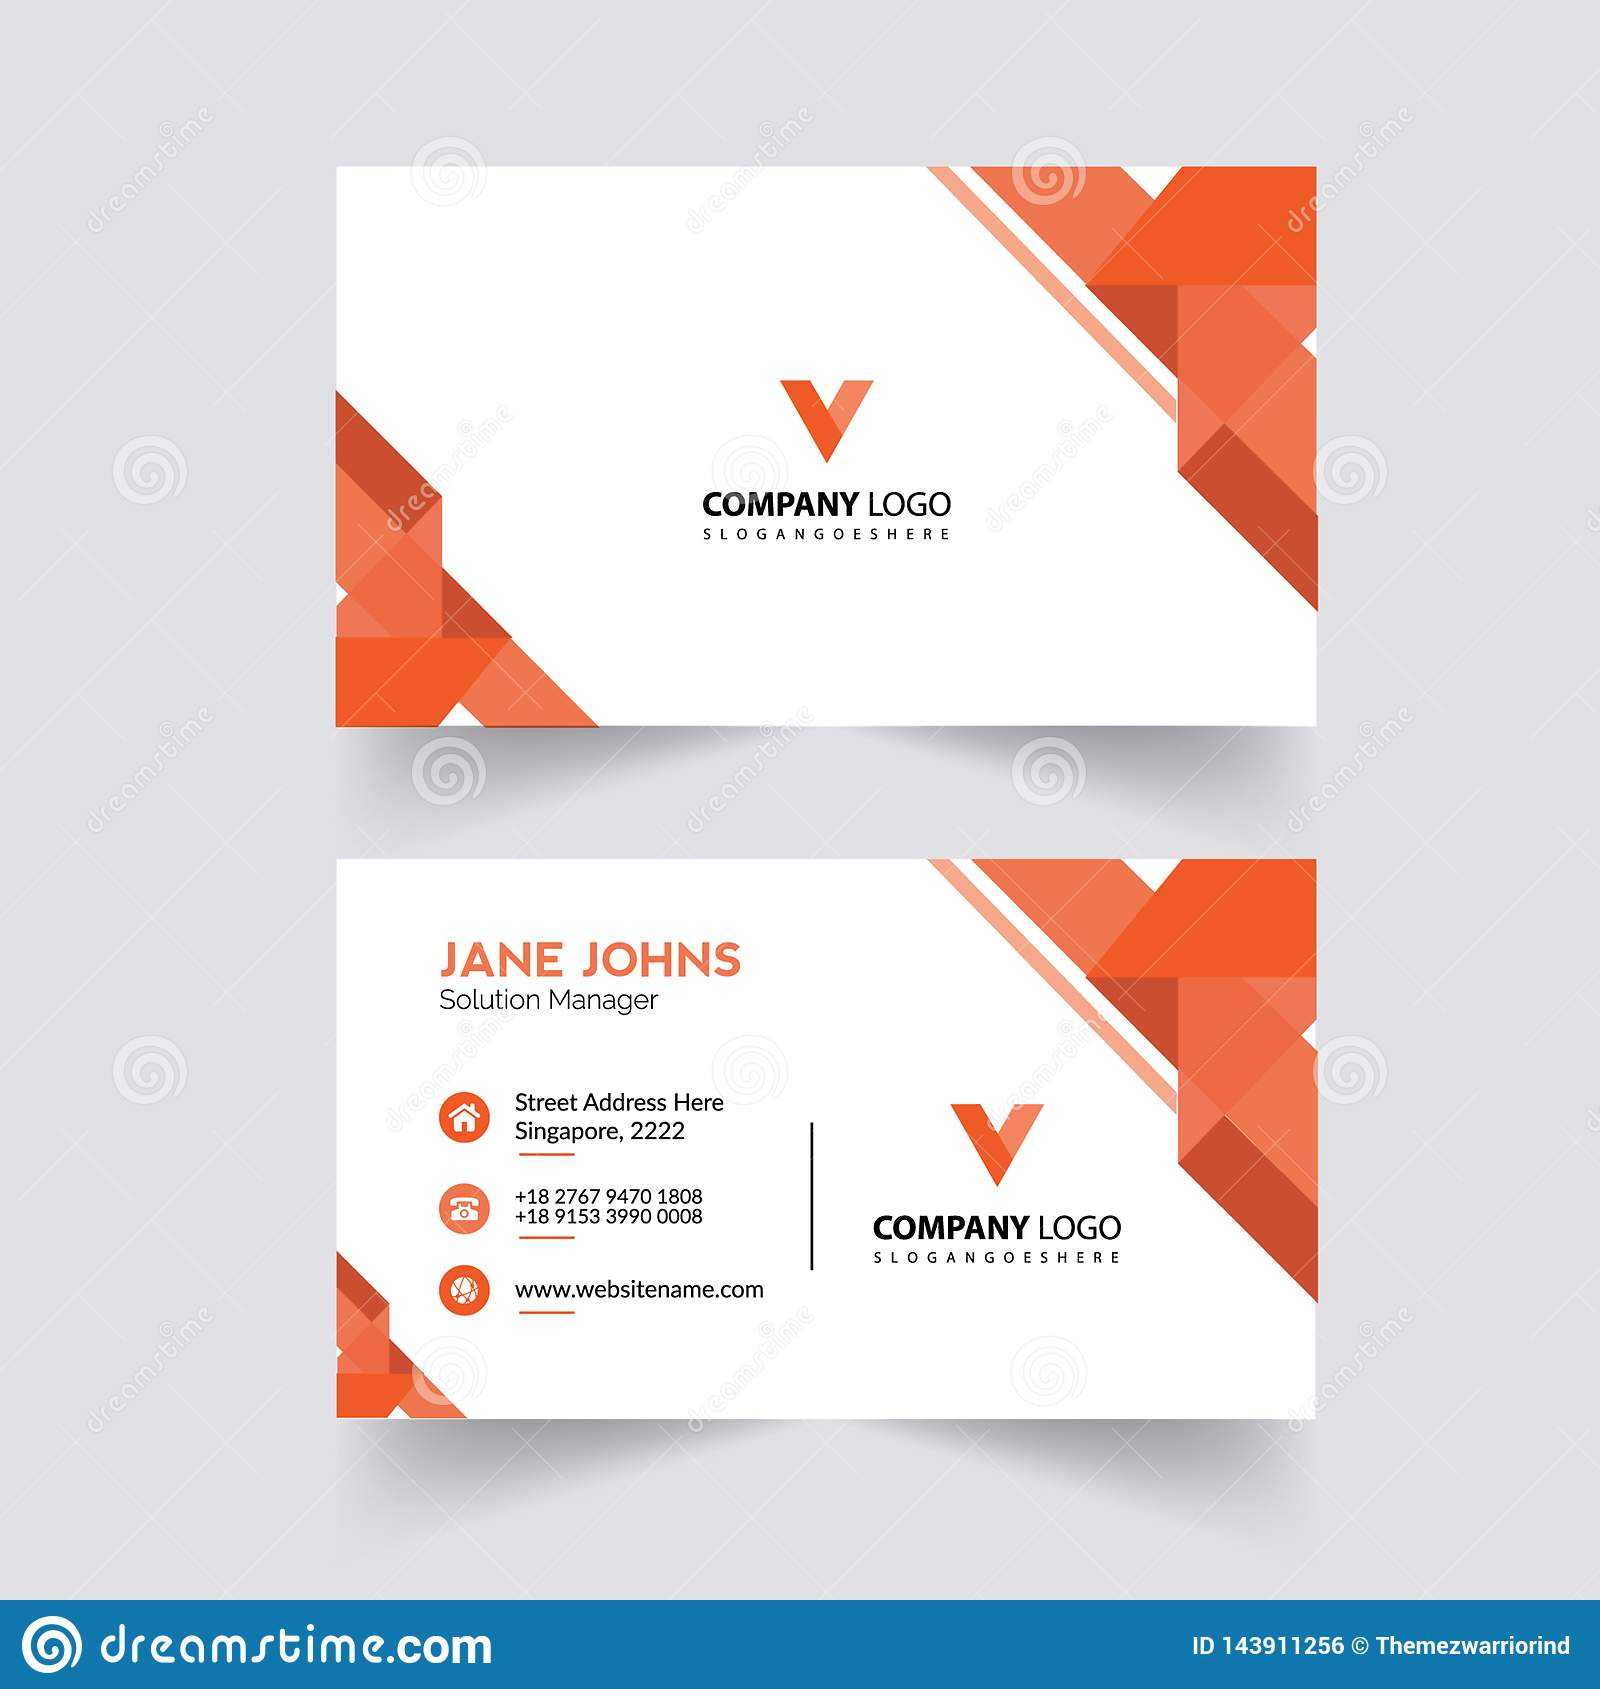 Abstruct Business Card Template Stock Illustration For Adobe Illustrator Business Card Template